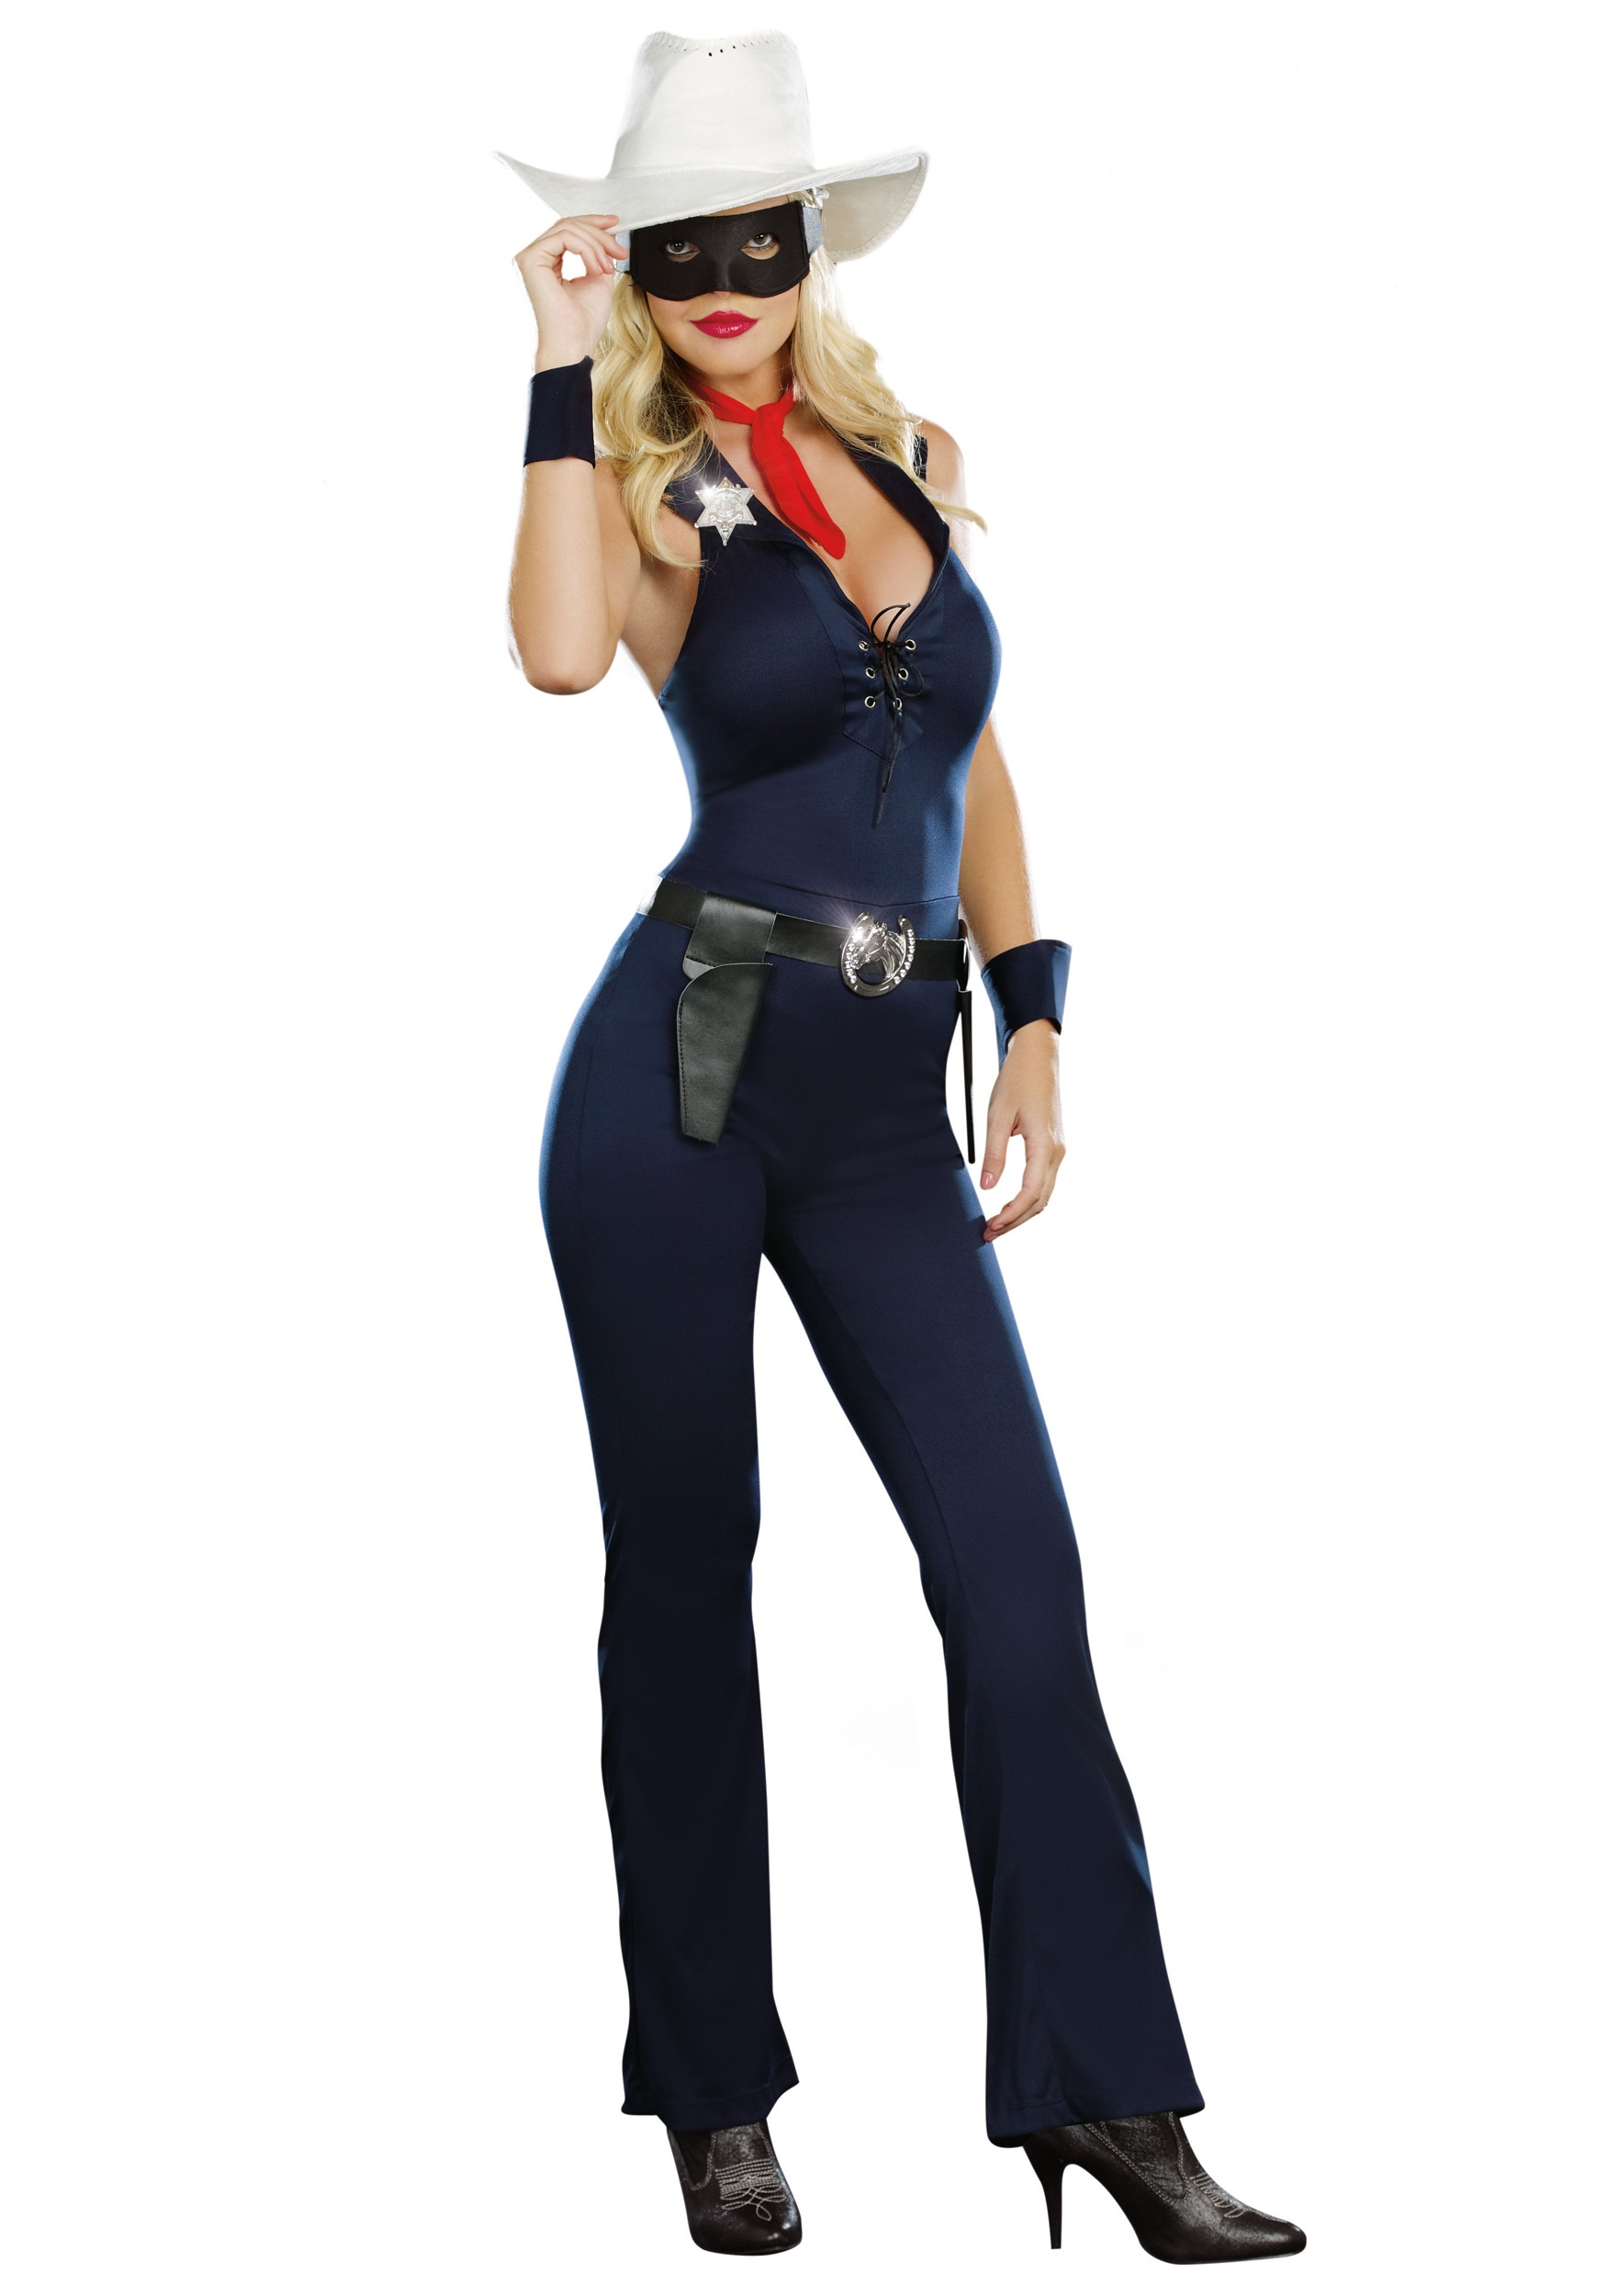 Cop and Prisoner Costumes for Men Women and Kids